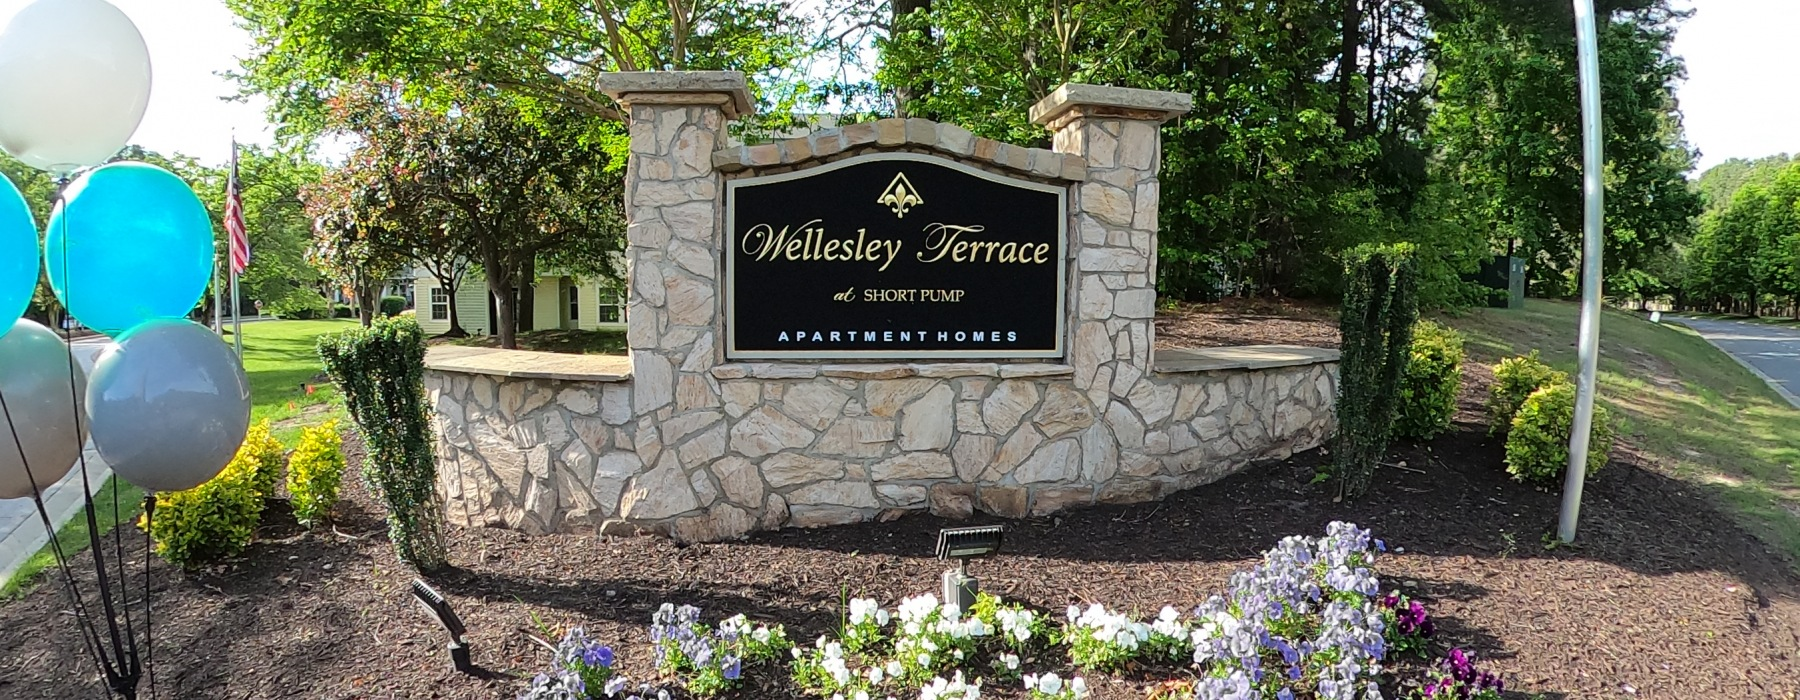 Wellesley Terrace entrance sign